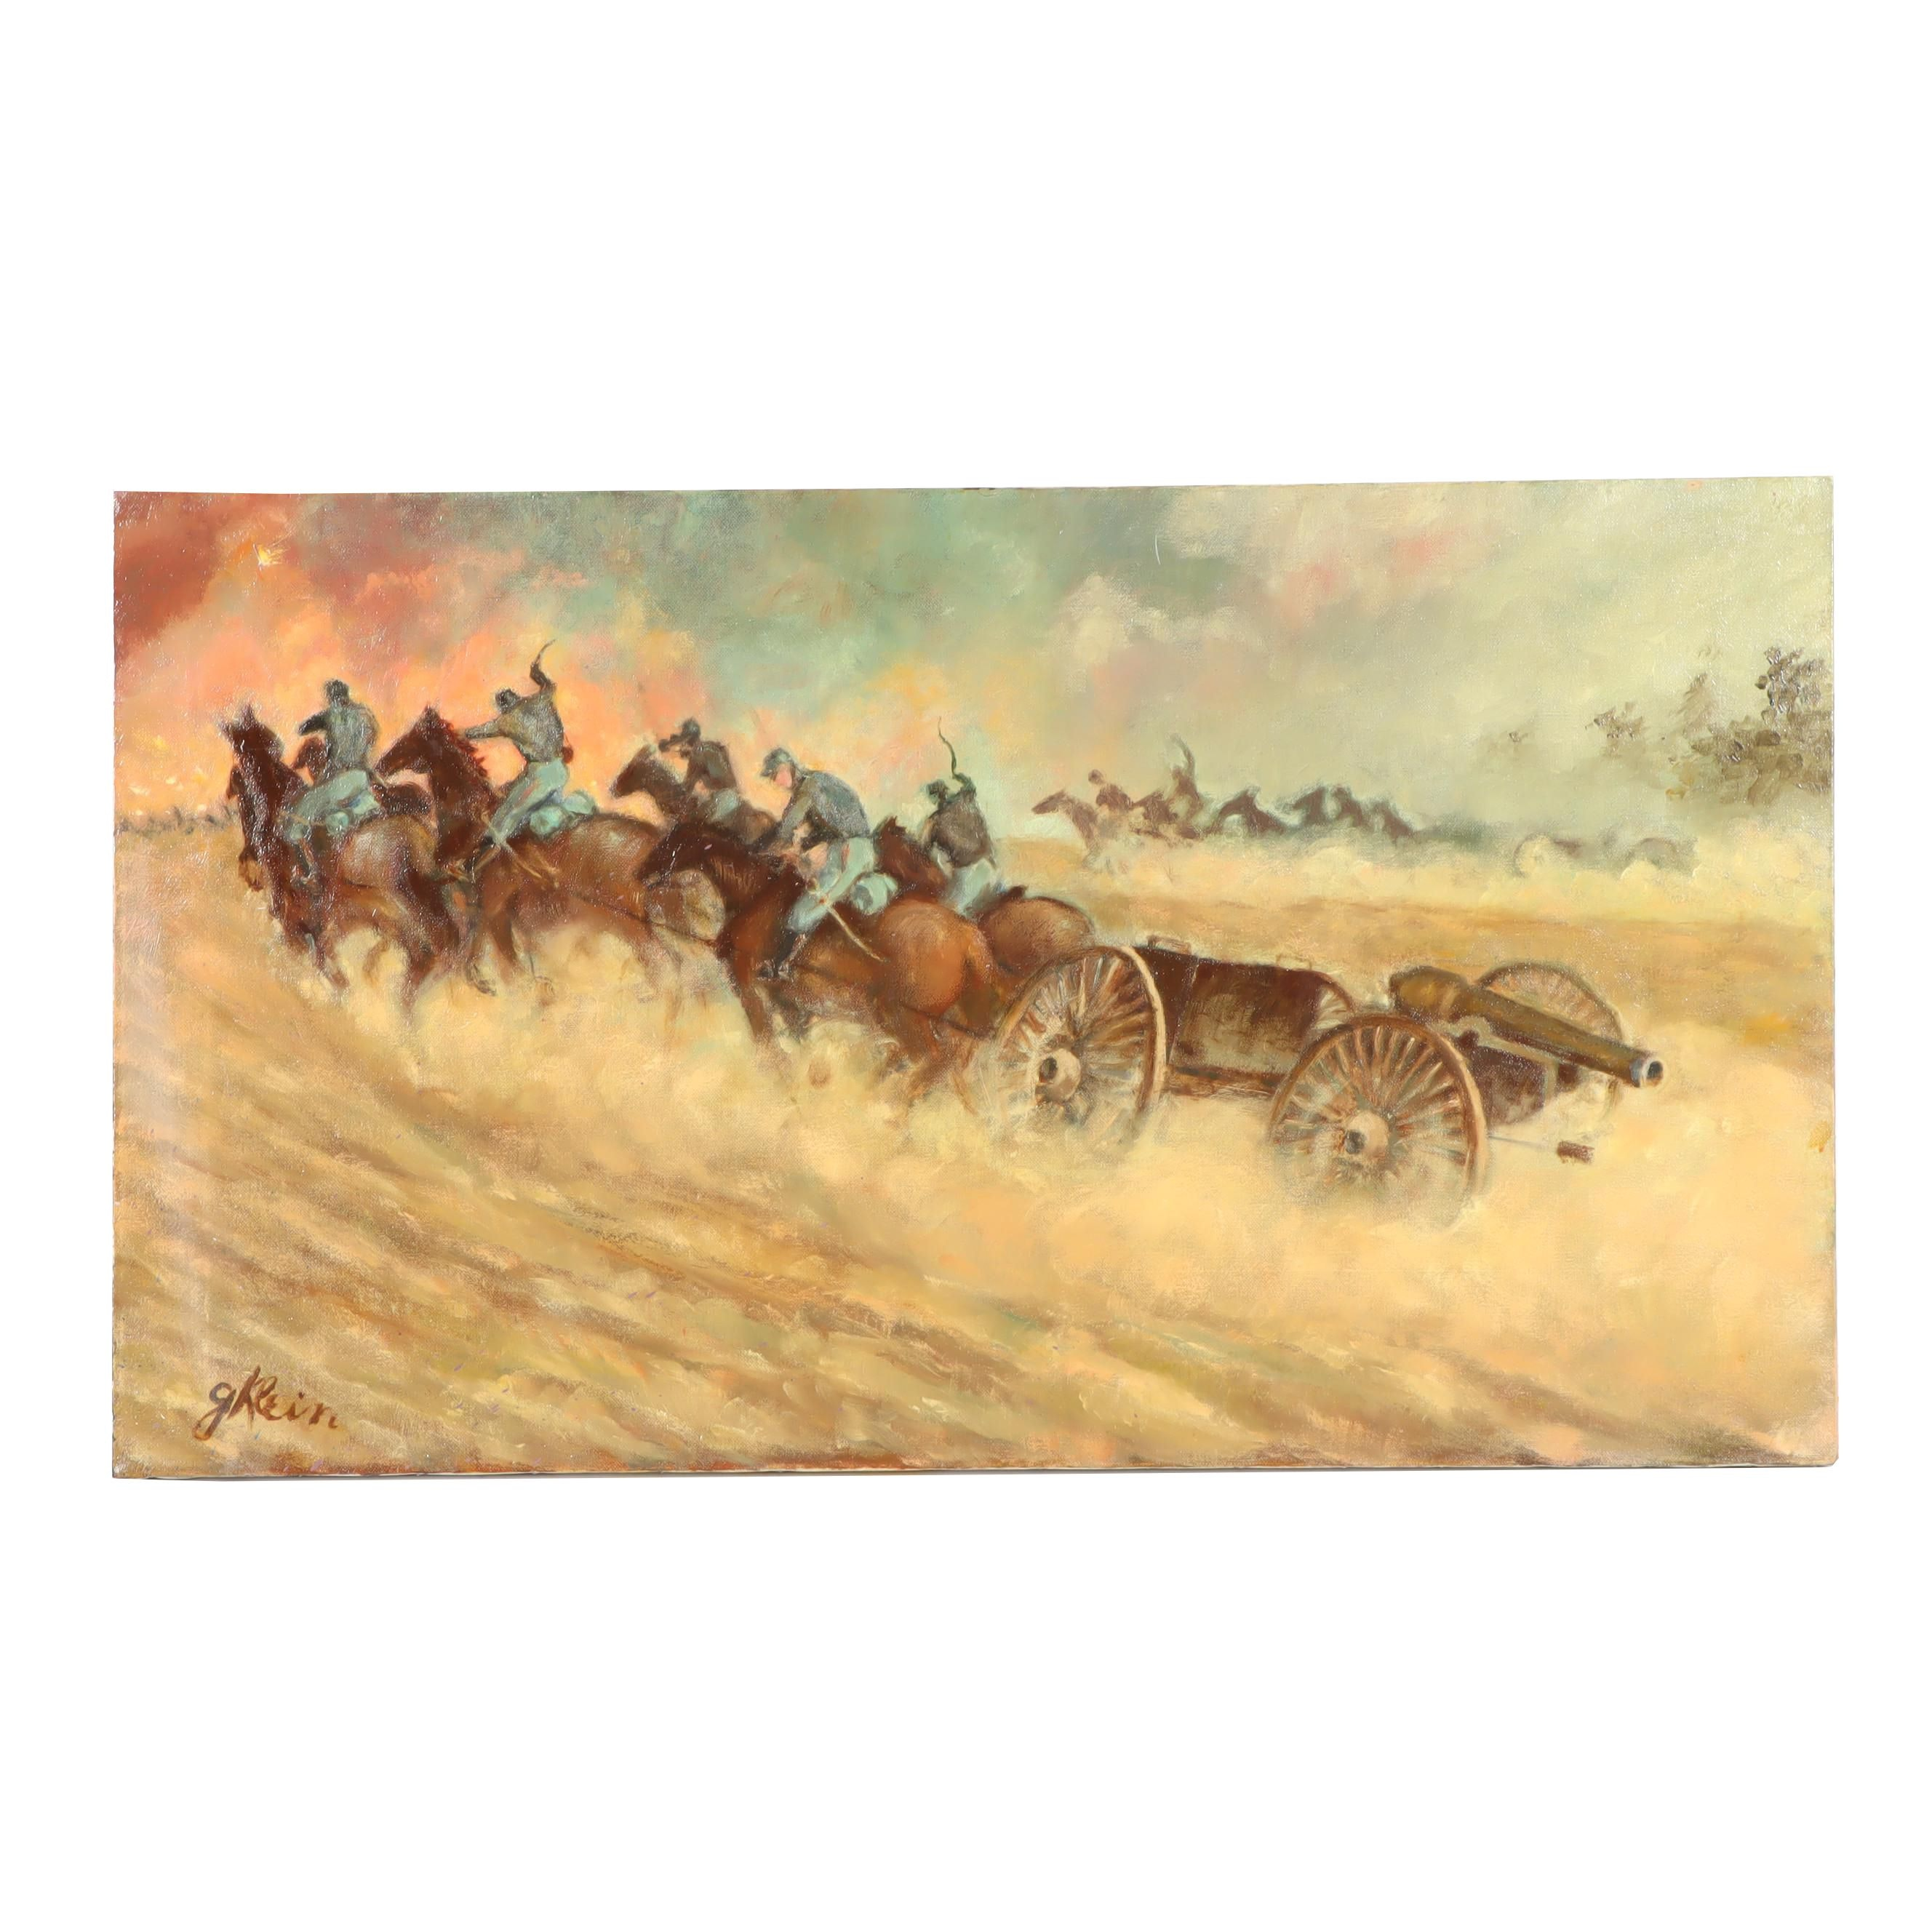 George Klein Civil War Battle Scene Oil Painting